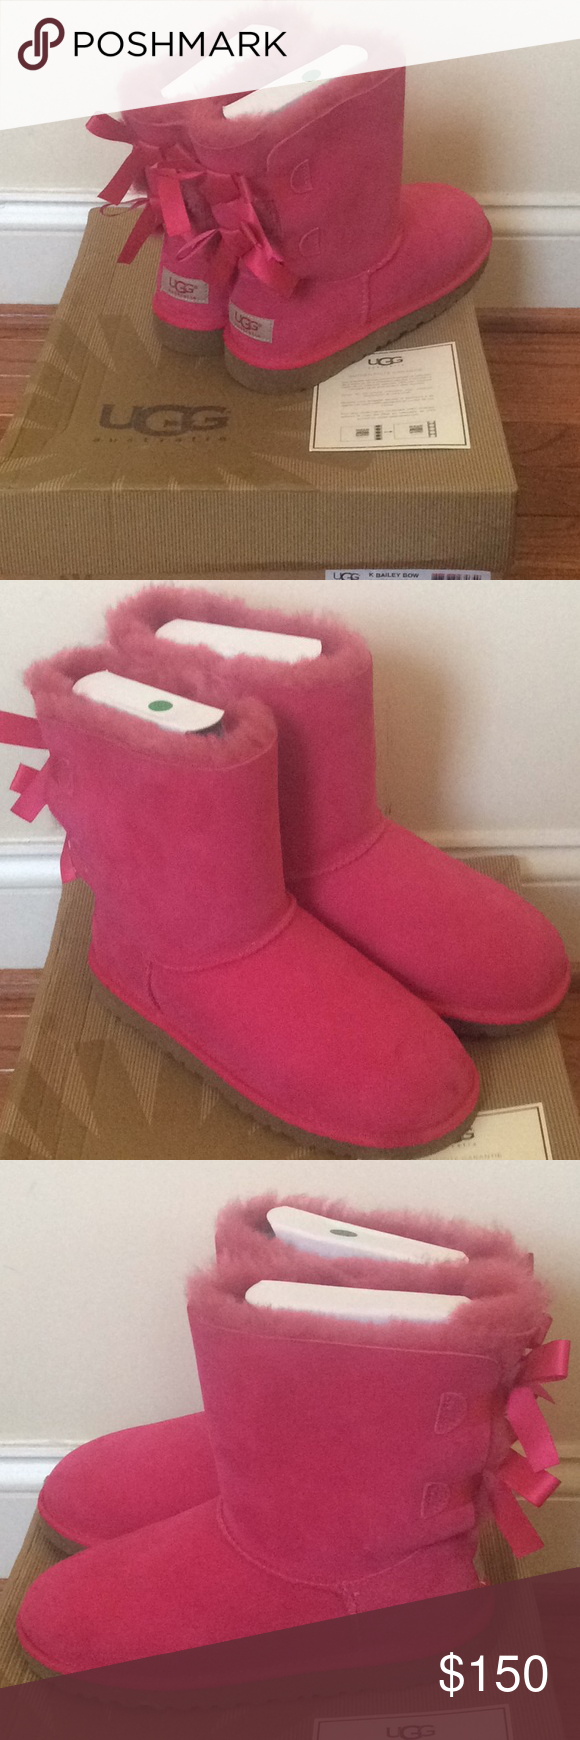 4a8bb0aa7c7 🆕 Authentic pink UGG bailey bow boots New with box Authentic UGG ...